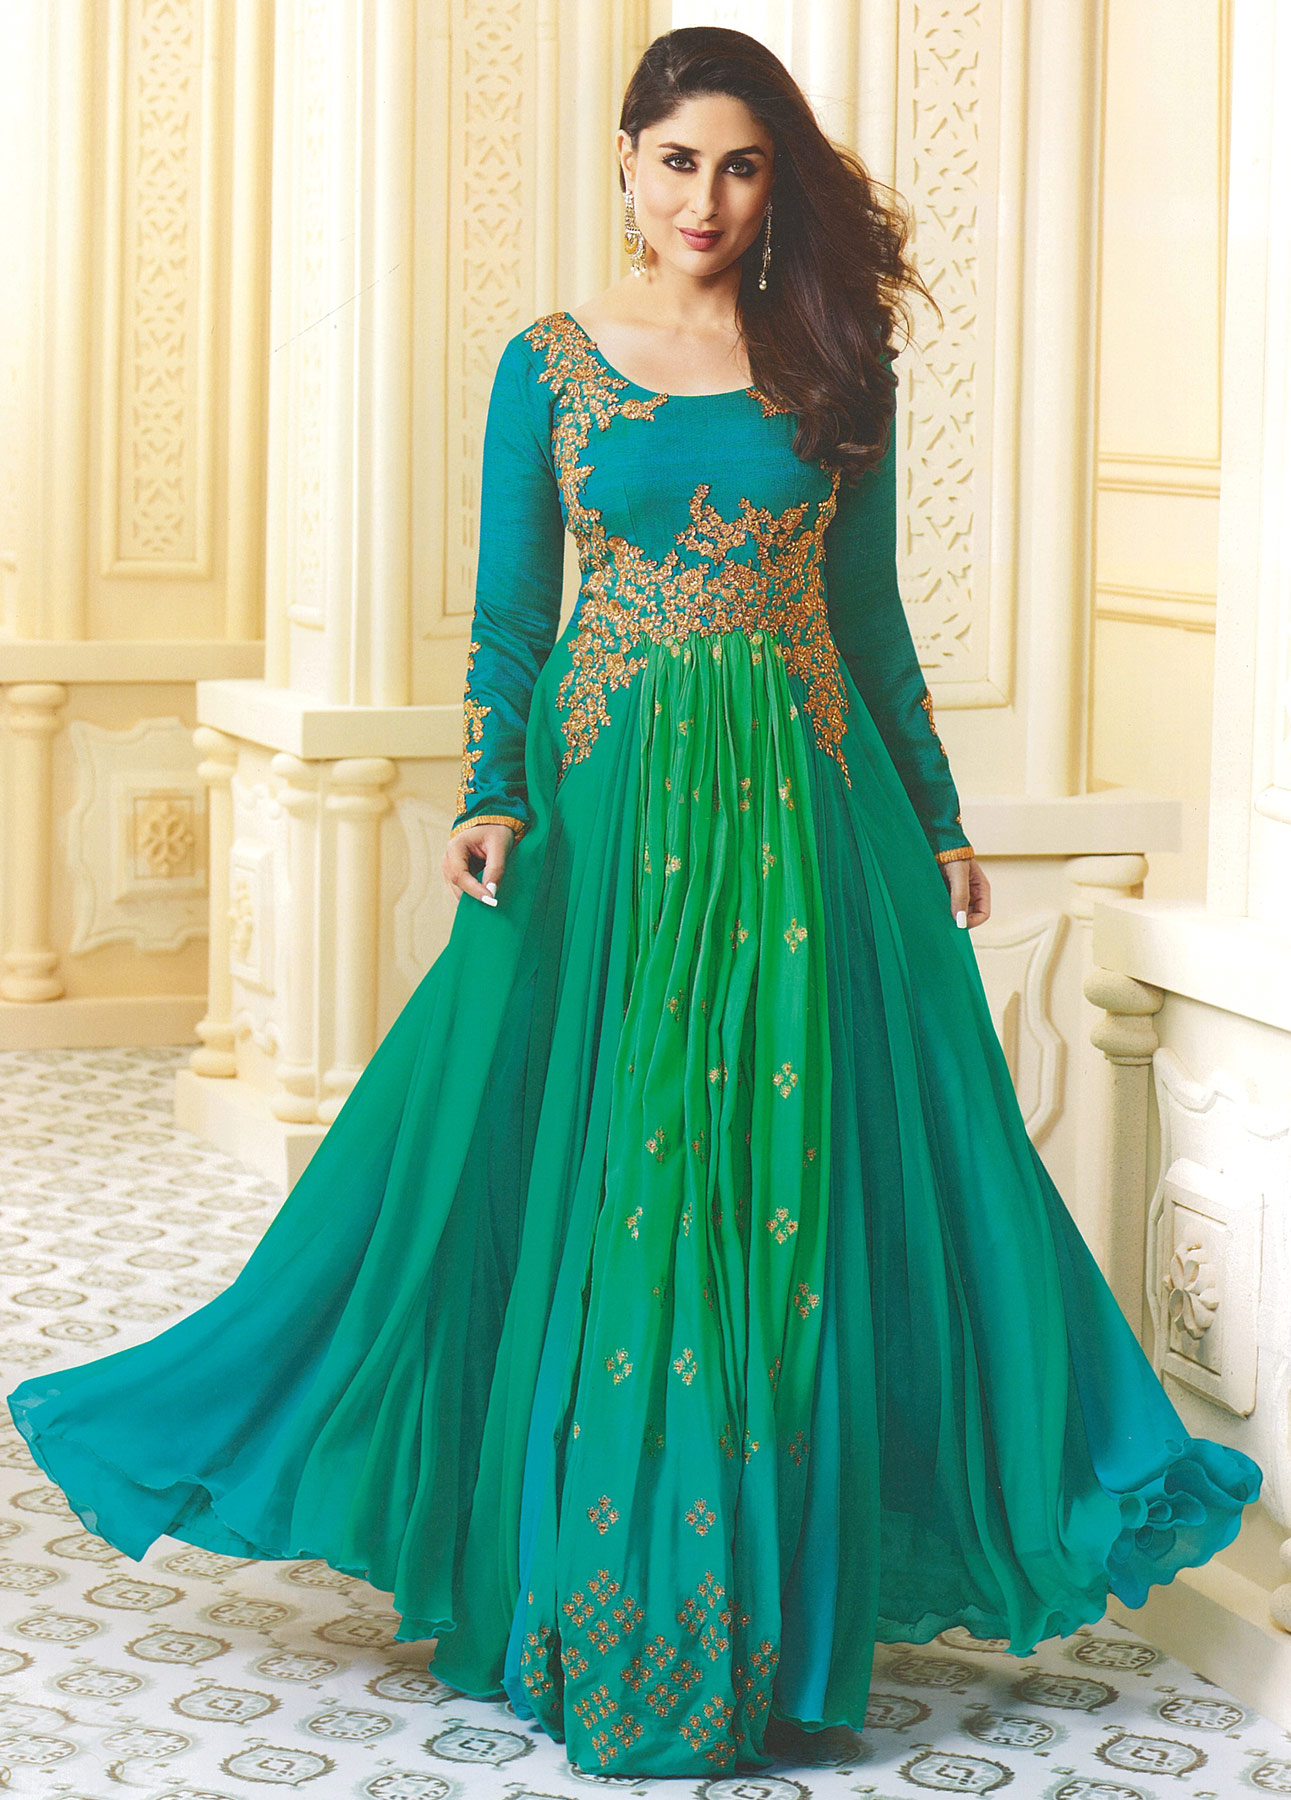 Dazzling Aqua Blue-Green Designer Embroidered Georgette & Art Silk Abaya Style Anarkali Suit